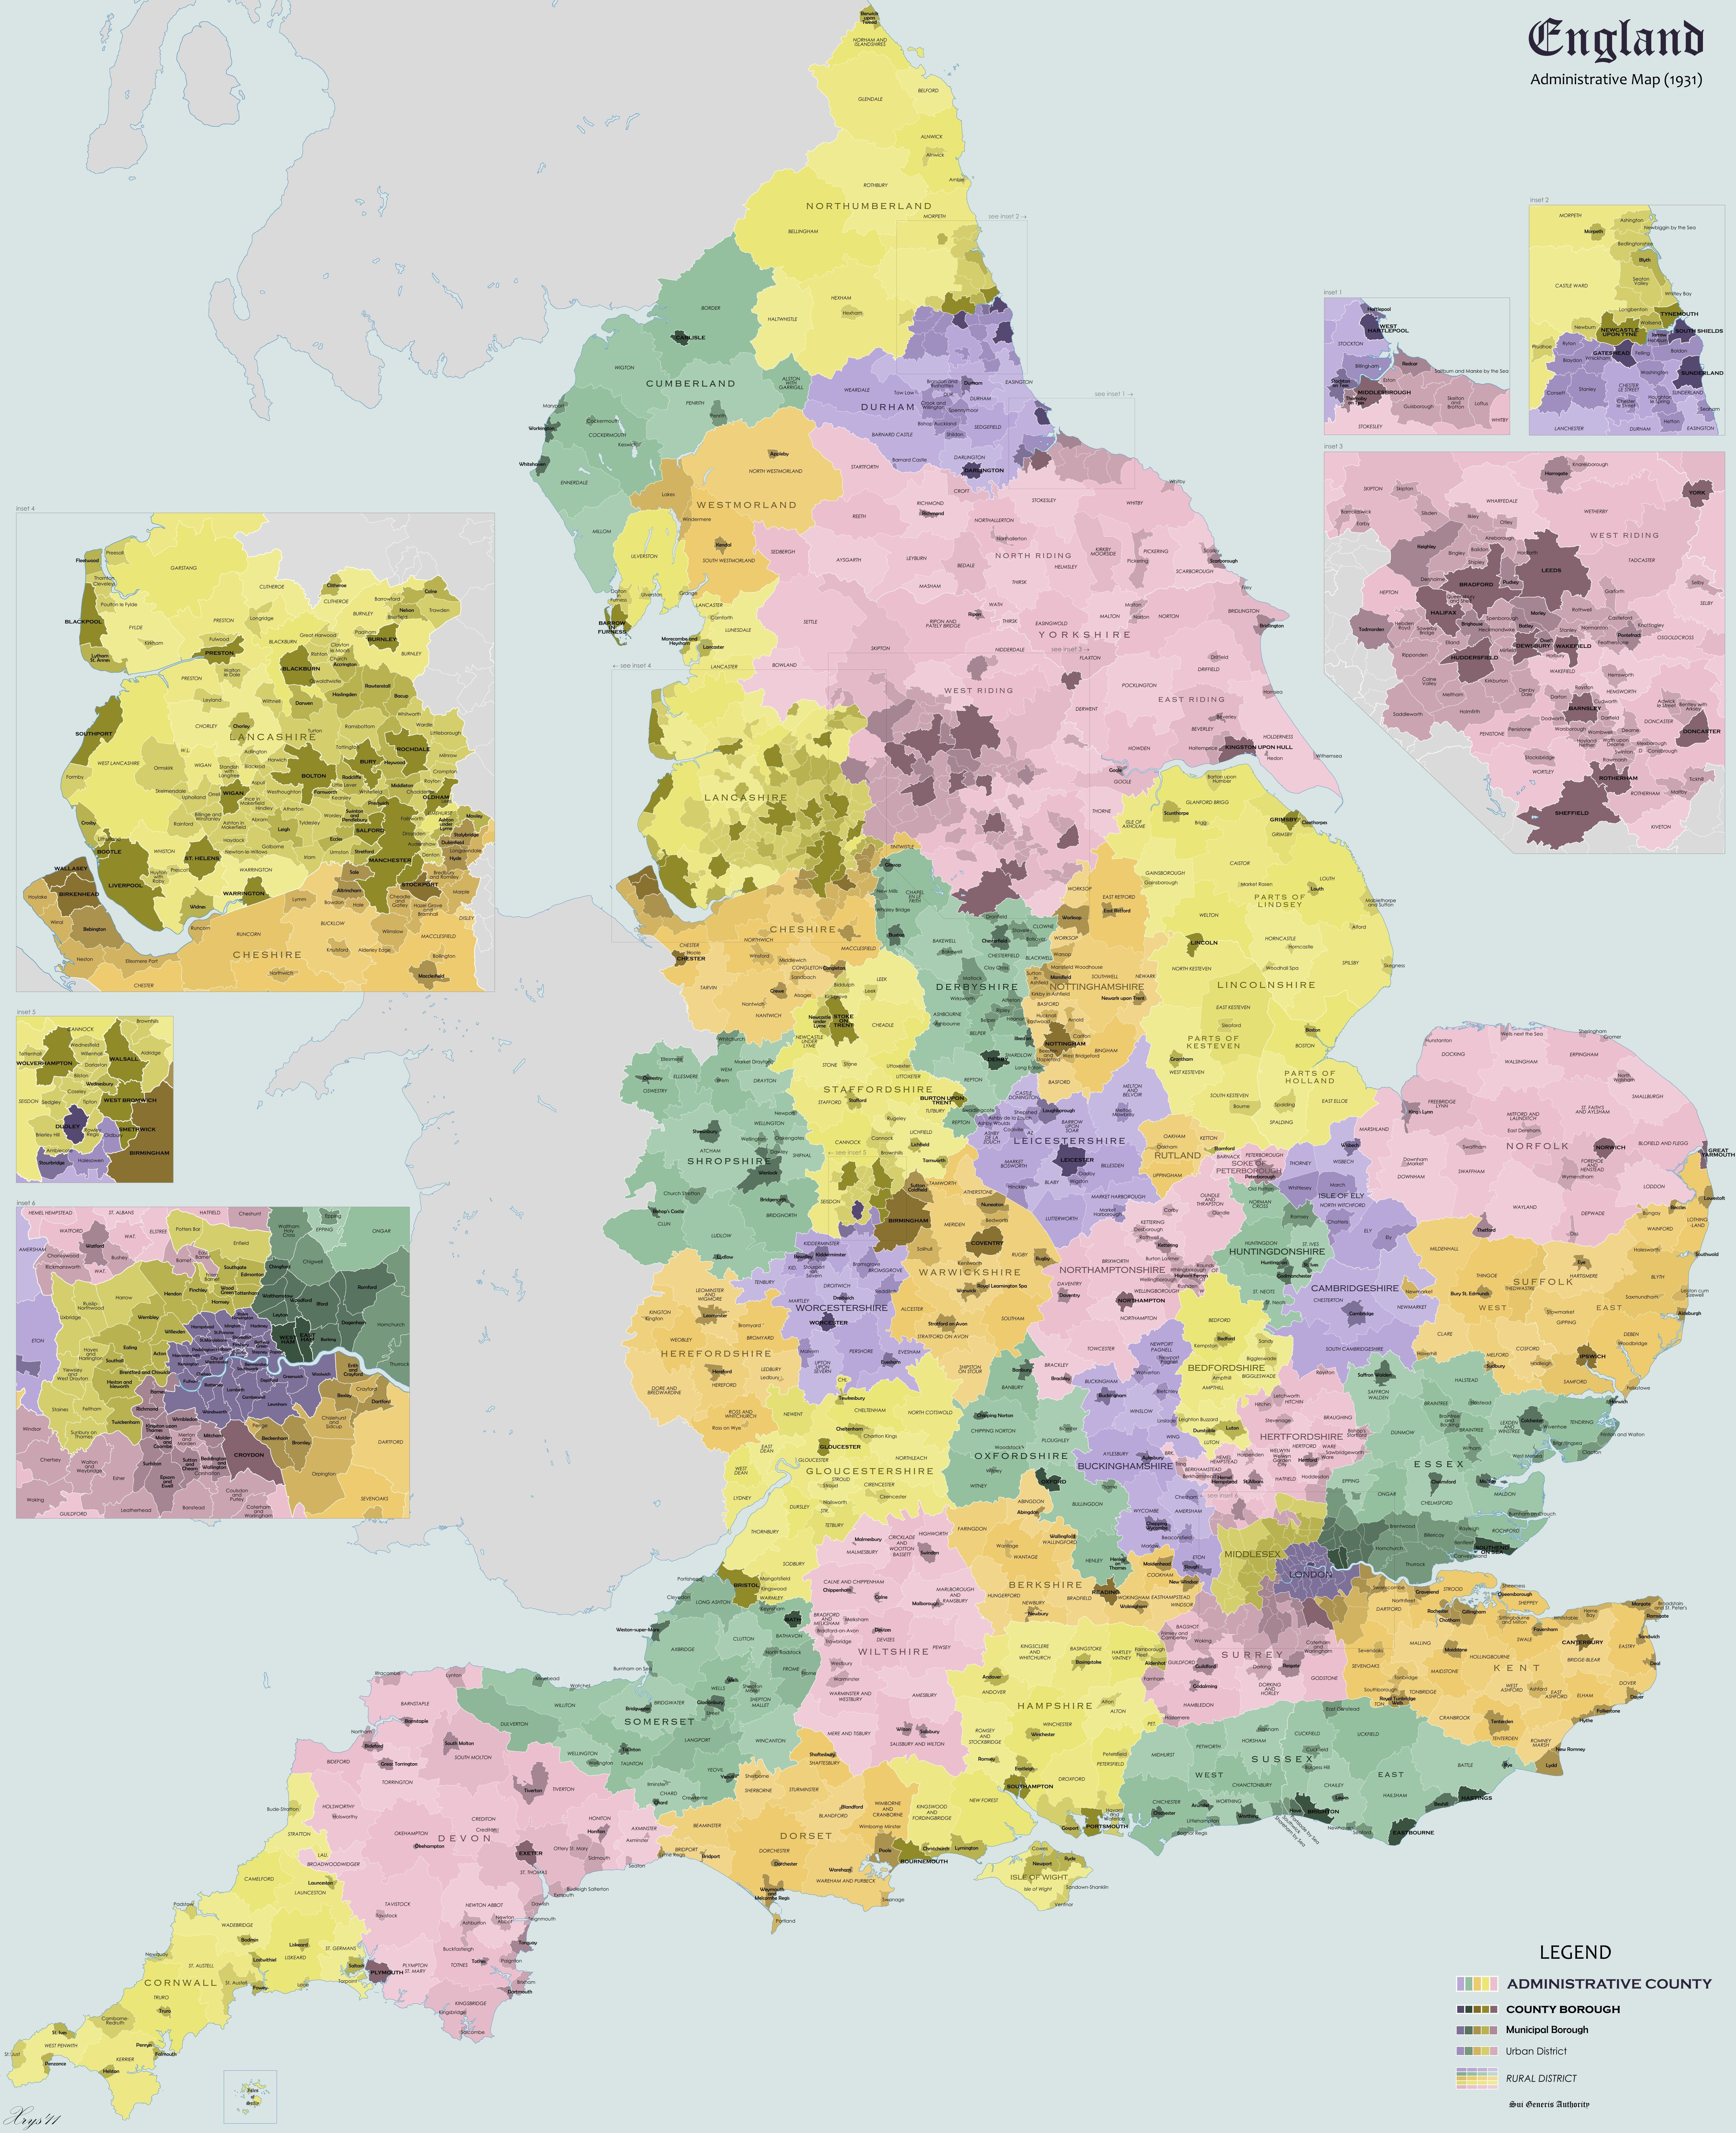 Map Of England Districts.Districts In England In 1931 Maps Law Courses Map Victoria Reign